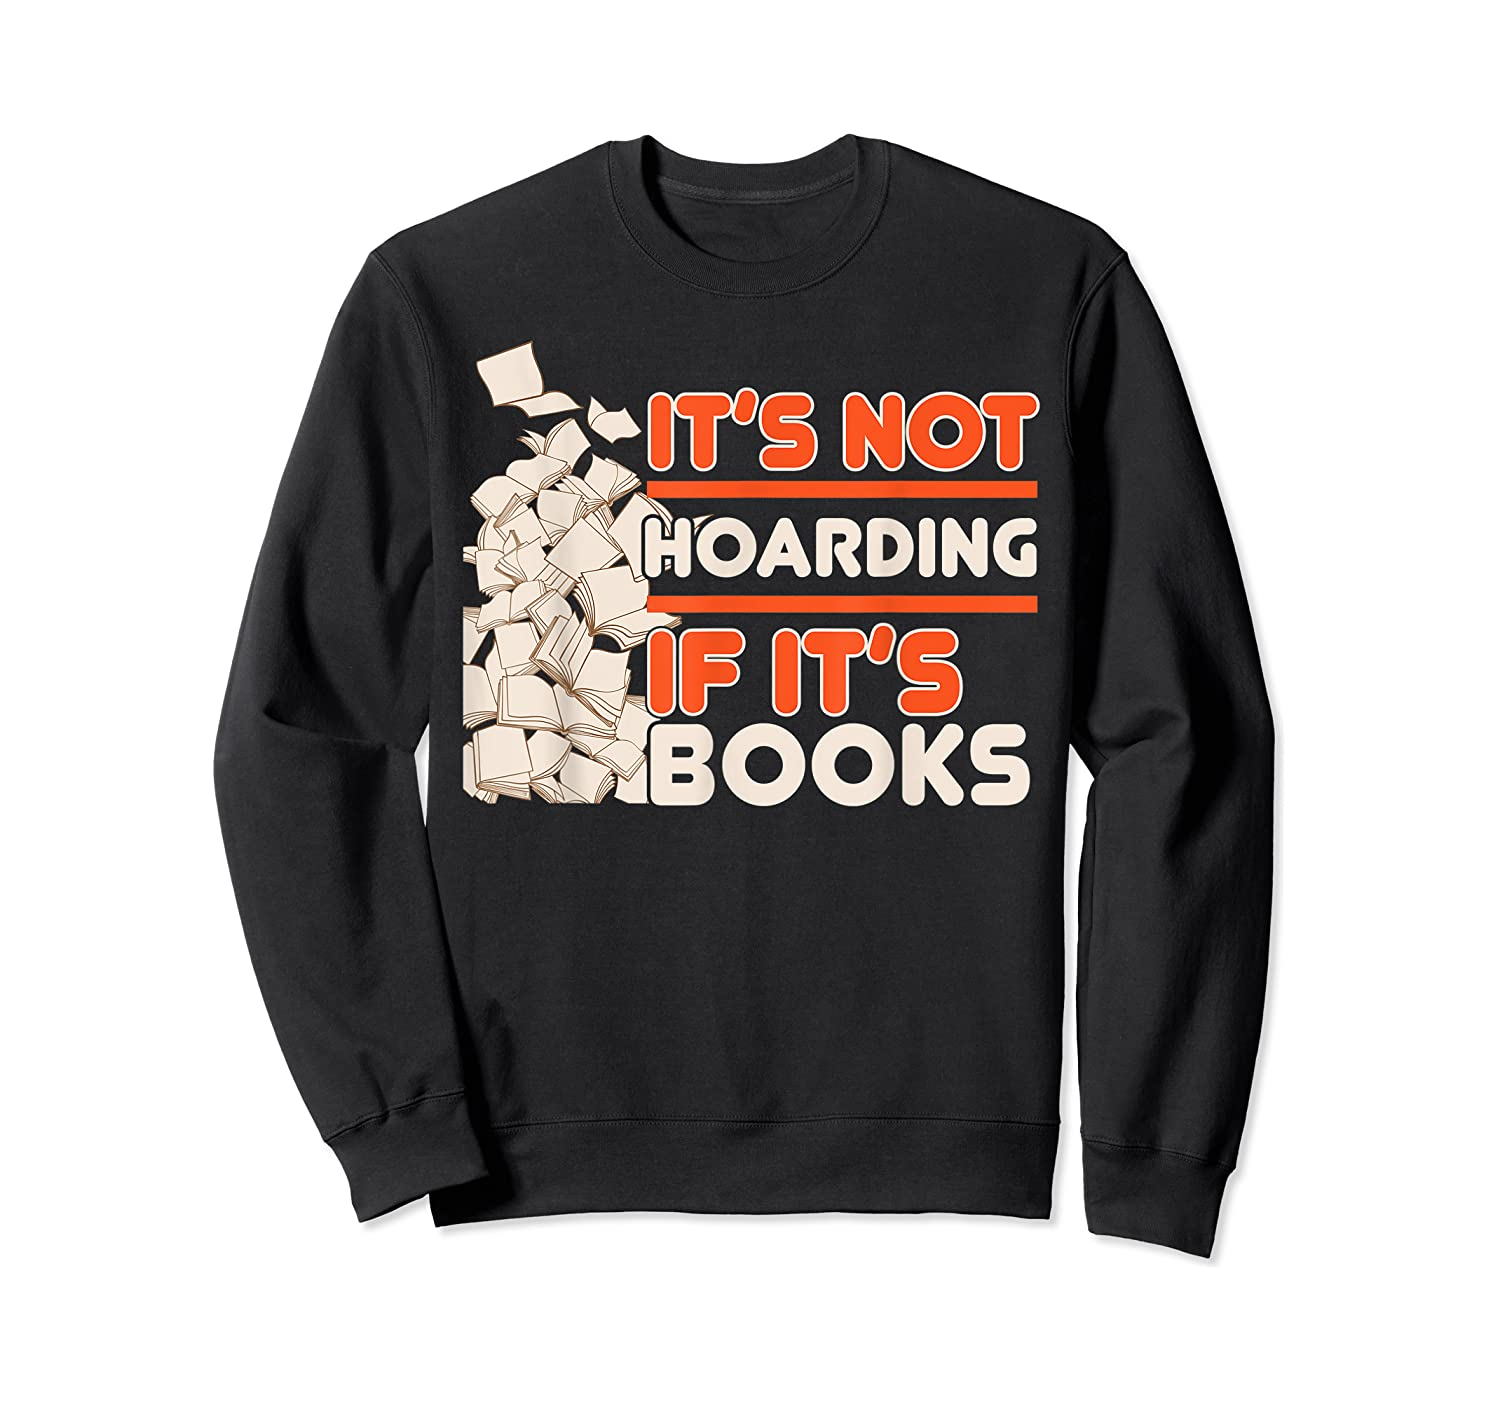 Reading It's Not Hoarding If It's Books Gifts Shirts Crewneck Sweater